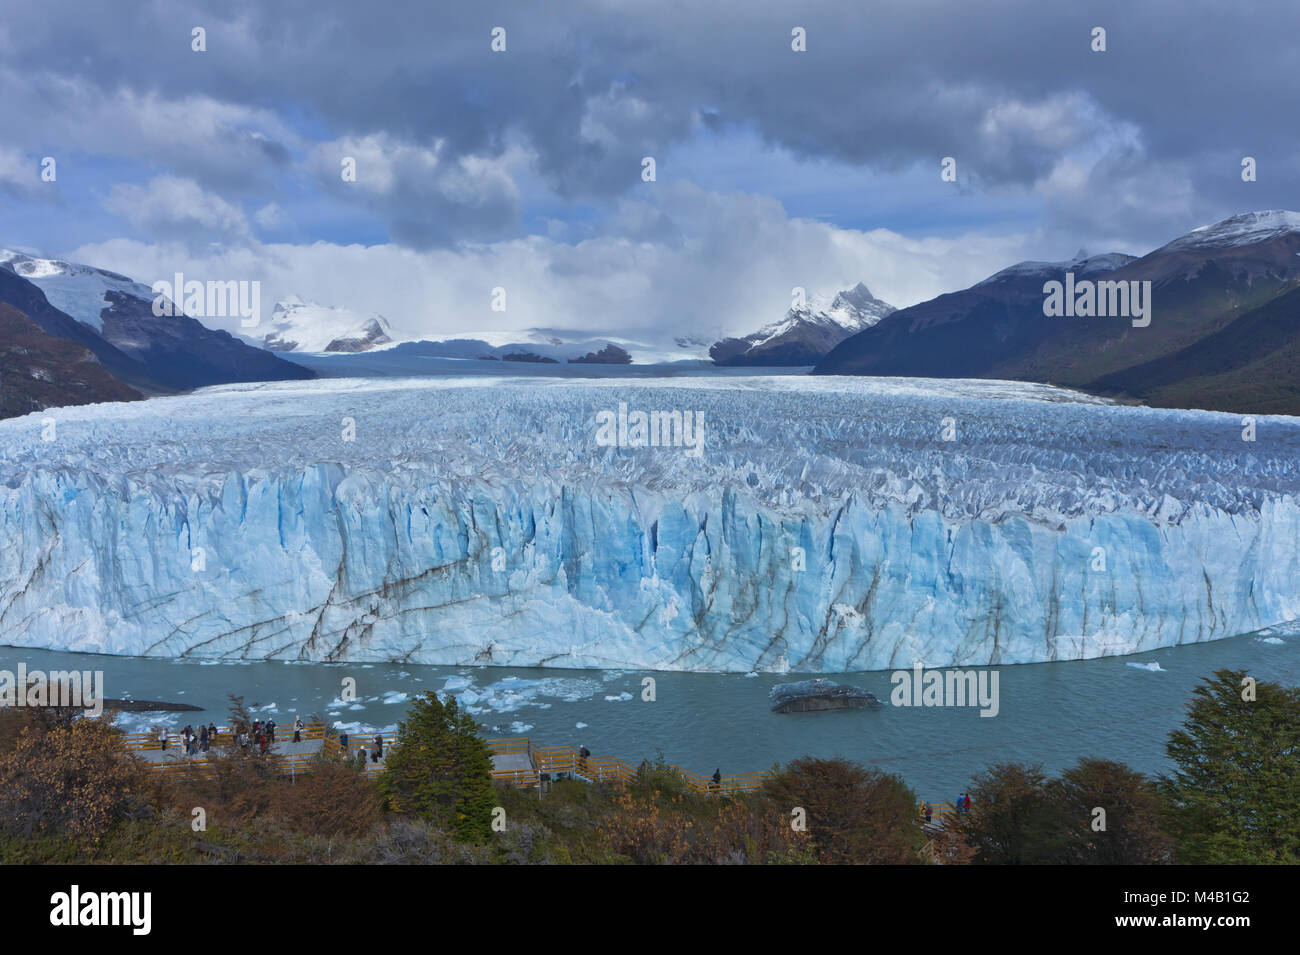 Blue Glacier, Patagonia, Argentina, South America - Stock Image